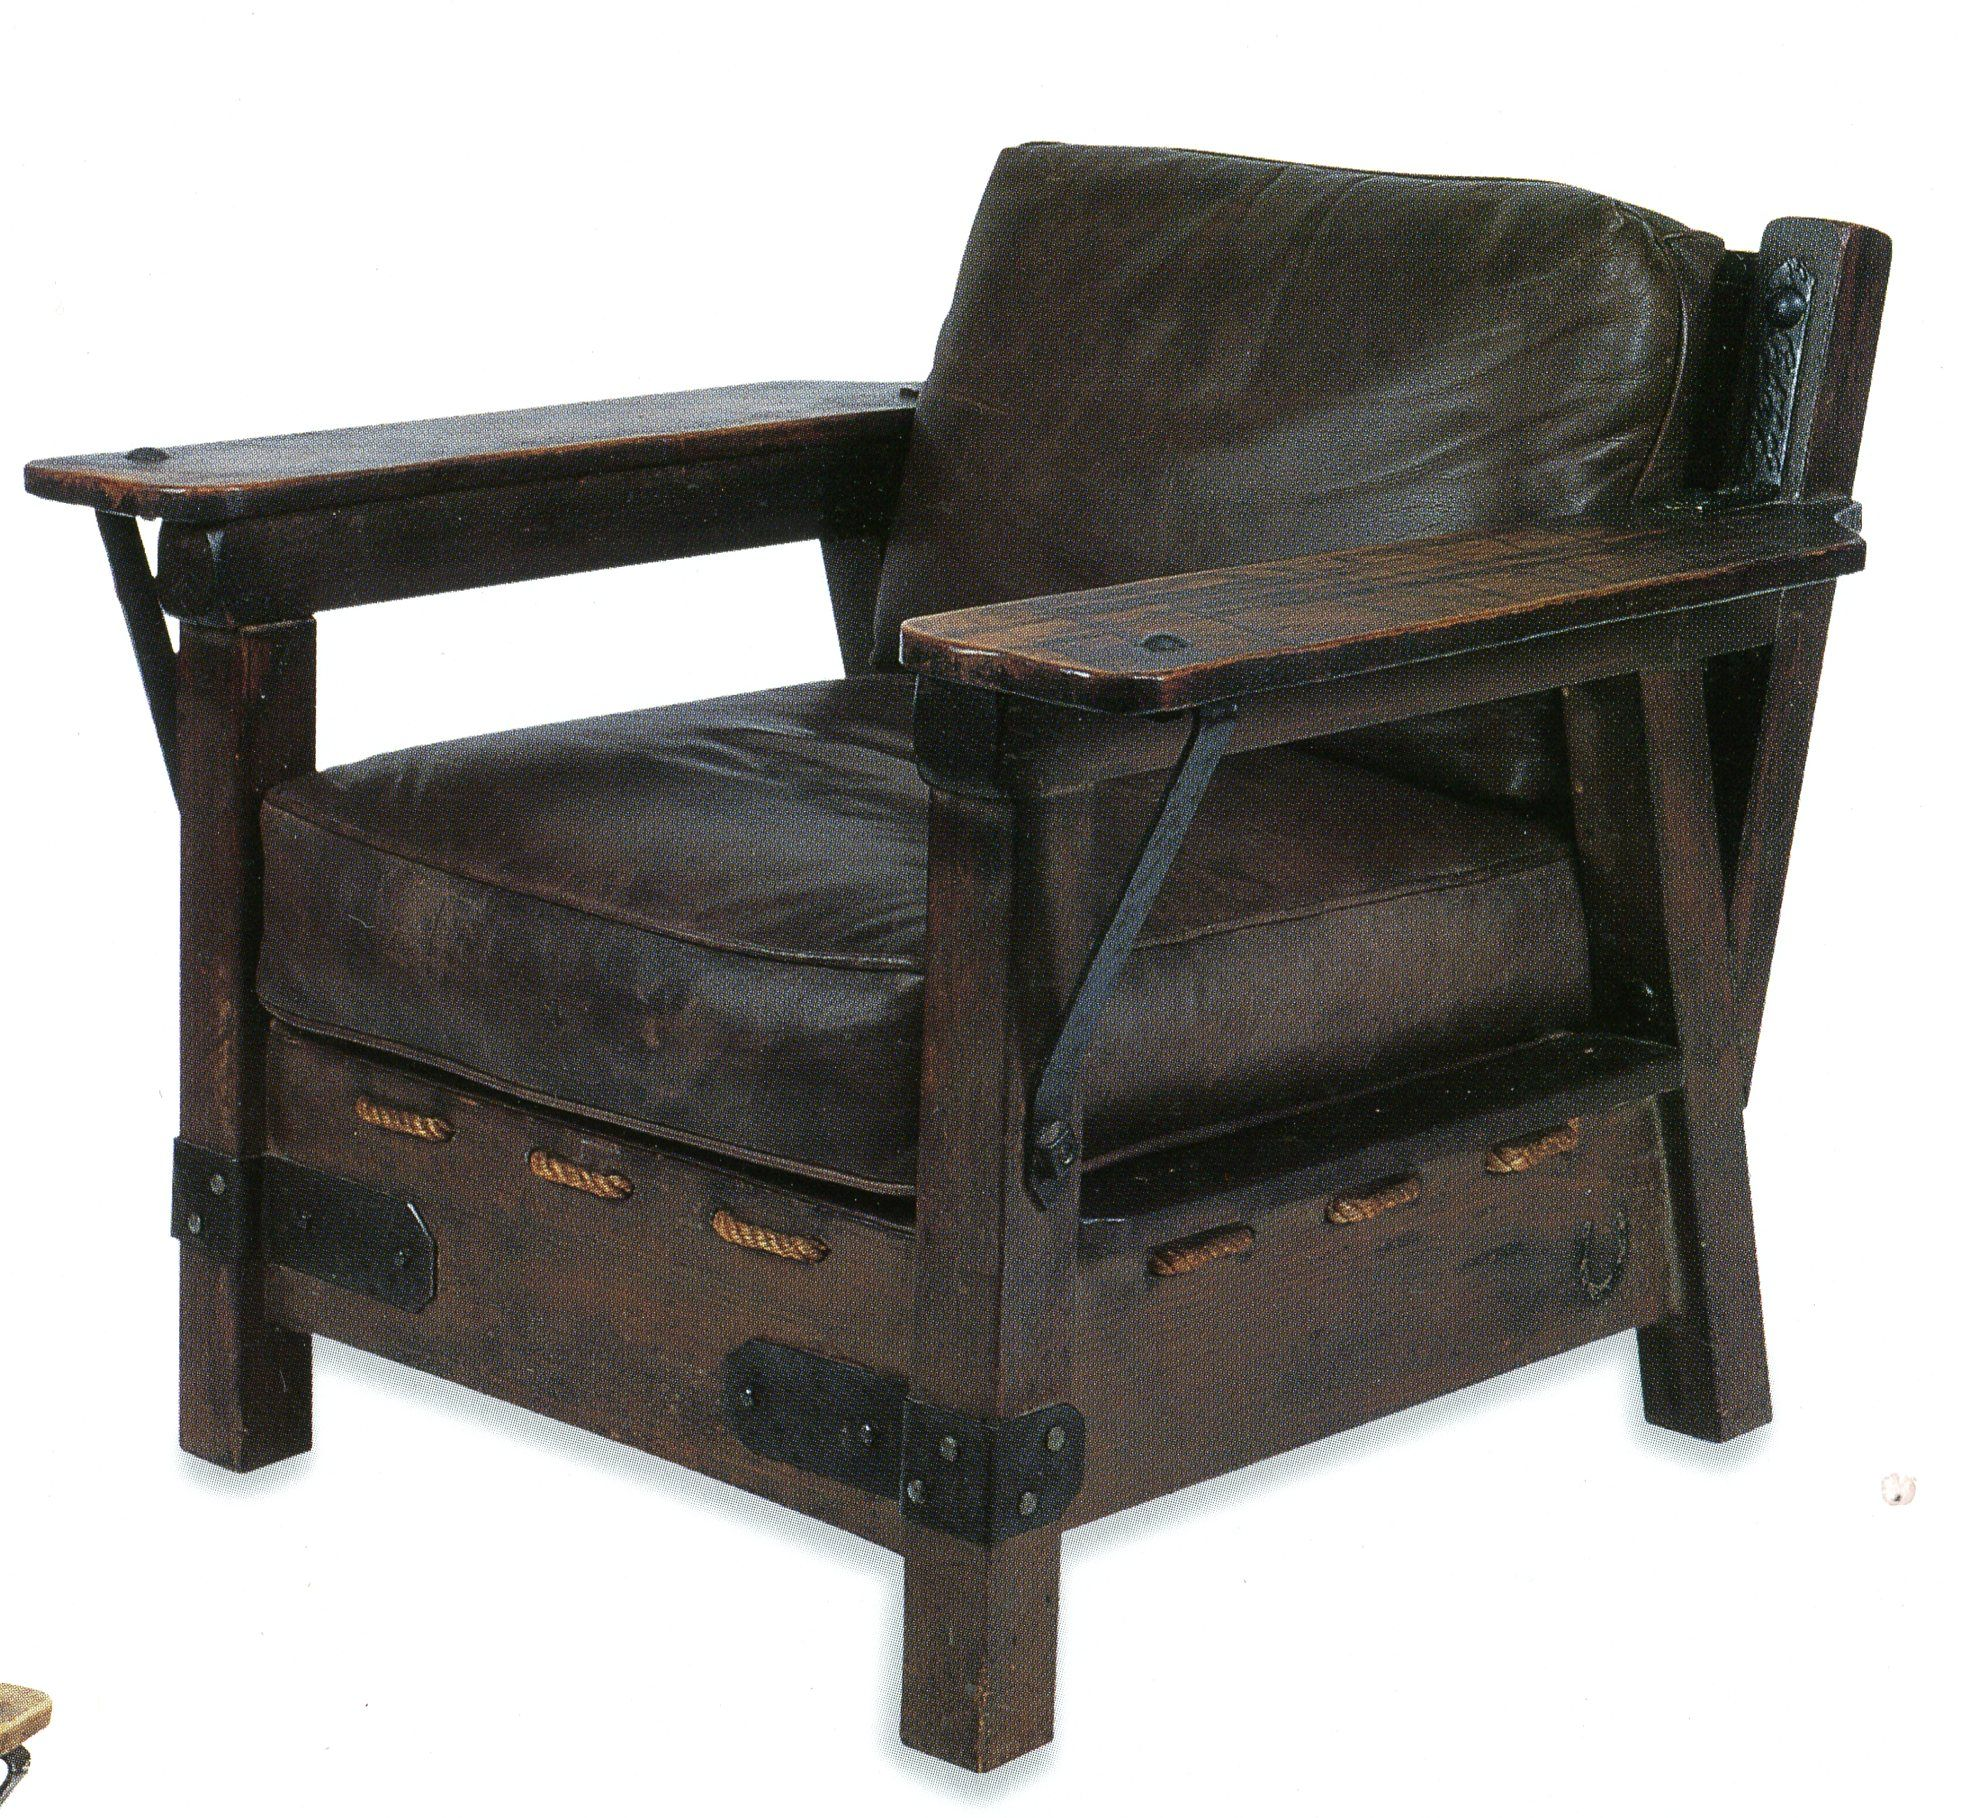 "Monterey"" style club chair a cross between Craftsman and"